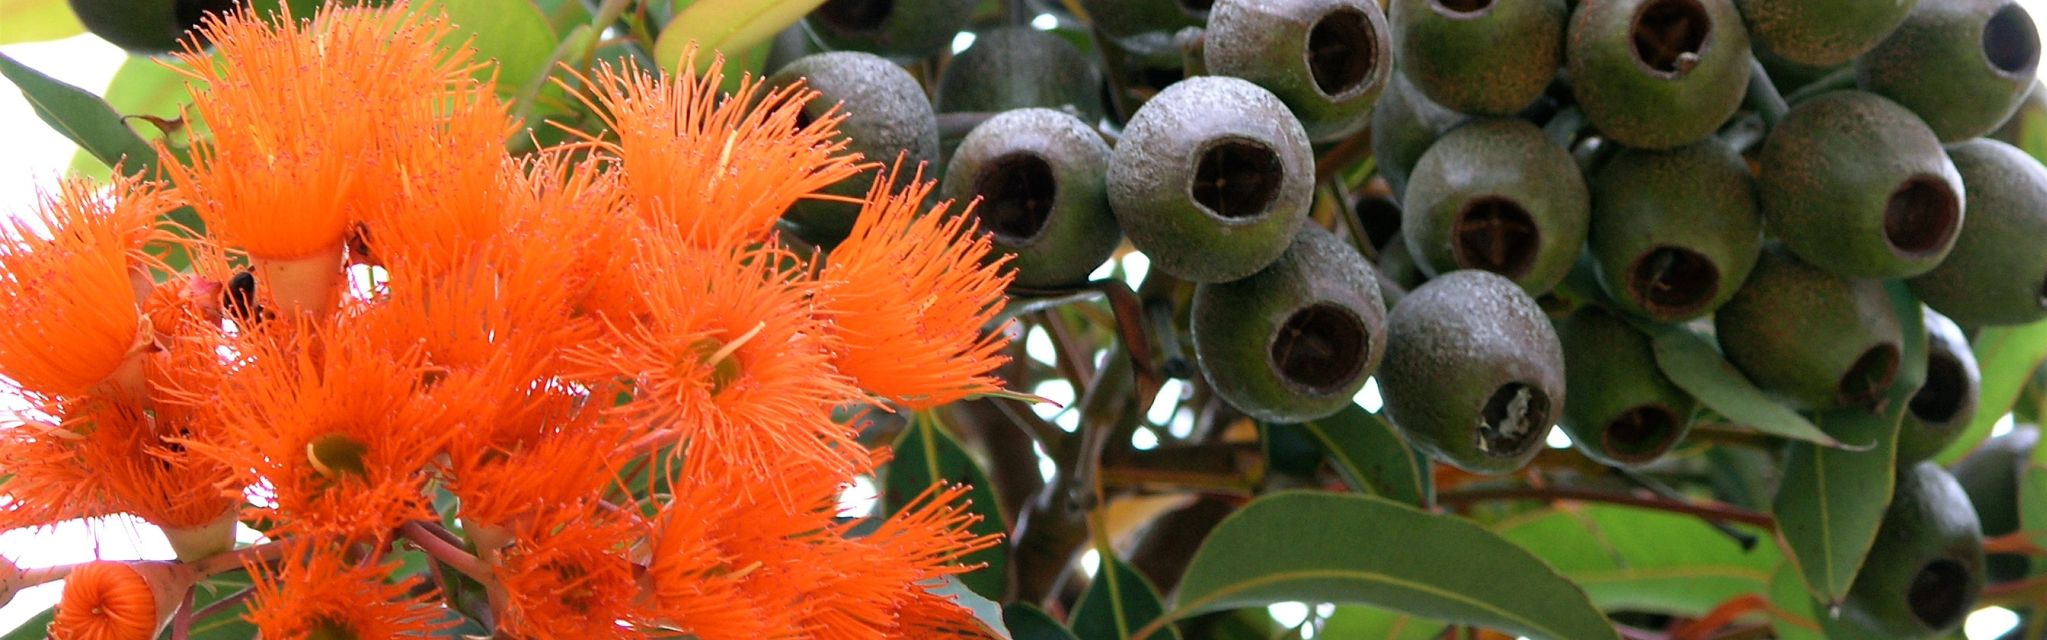 Gumnuts and Blossoms from a Nature Bound Australia tour